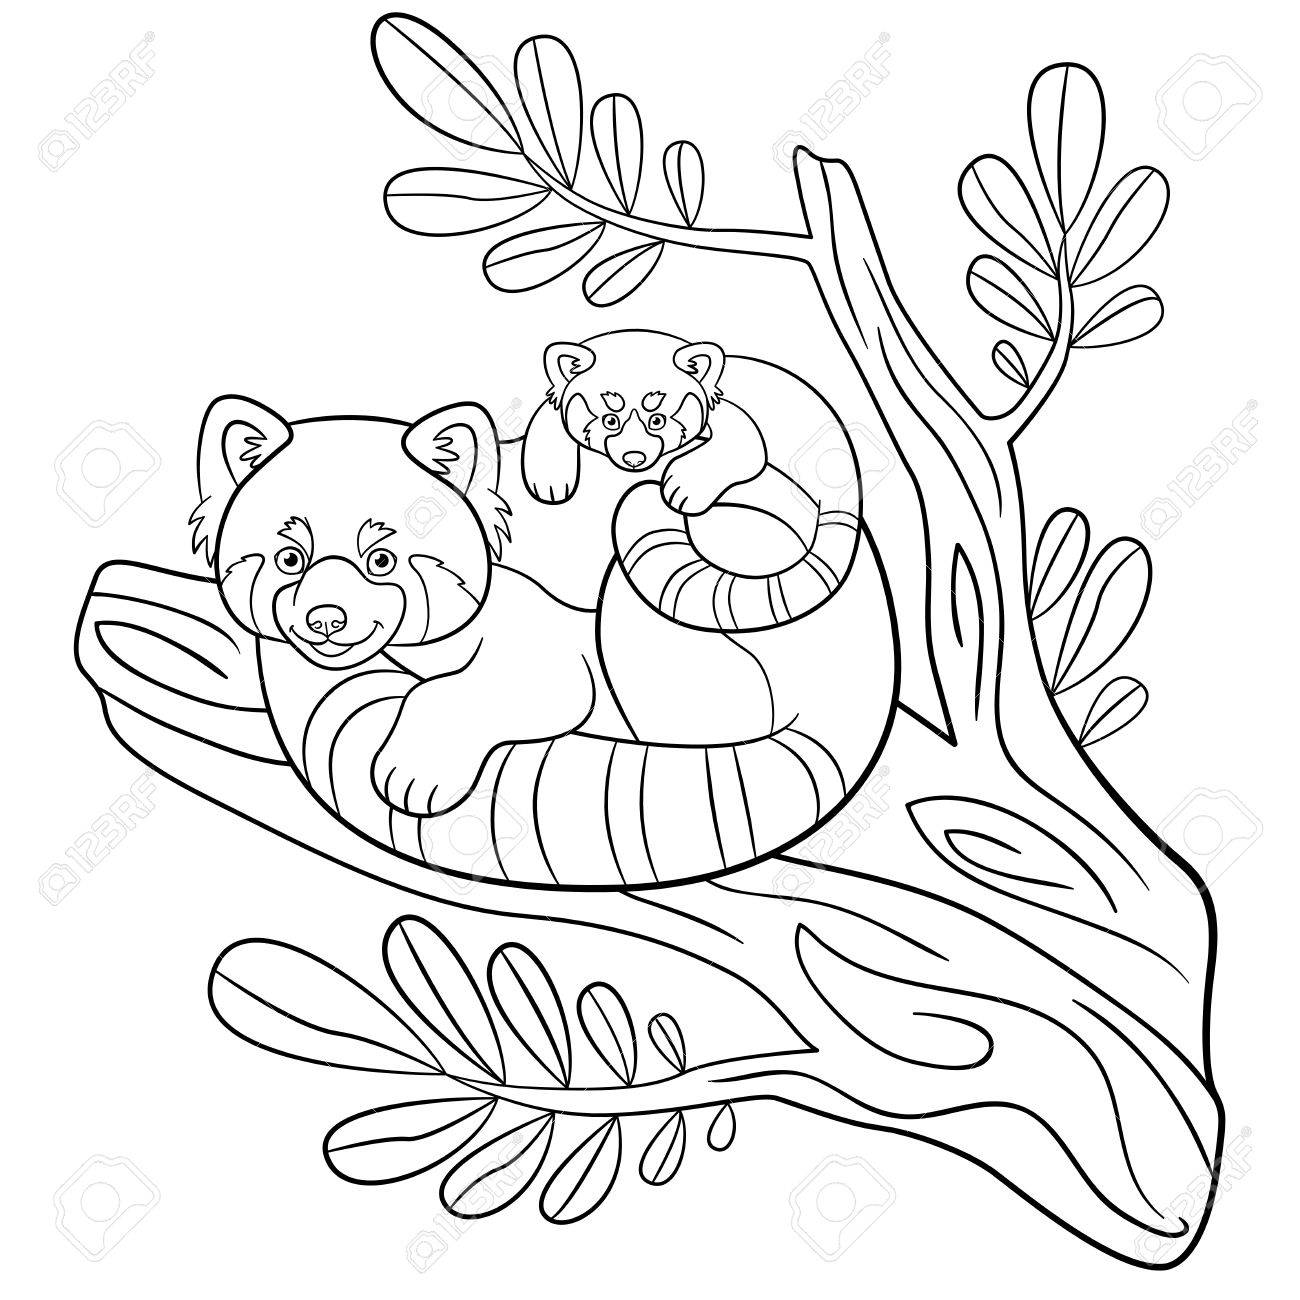 Coloring Pages Mother Red Panda Sits On The Tree Branch With